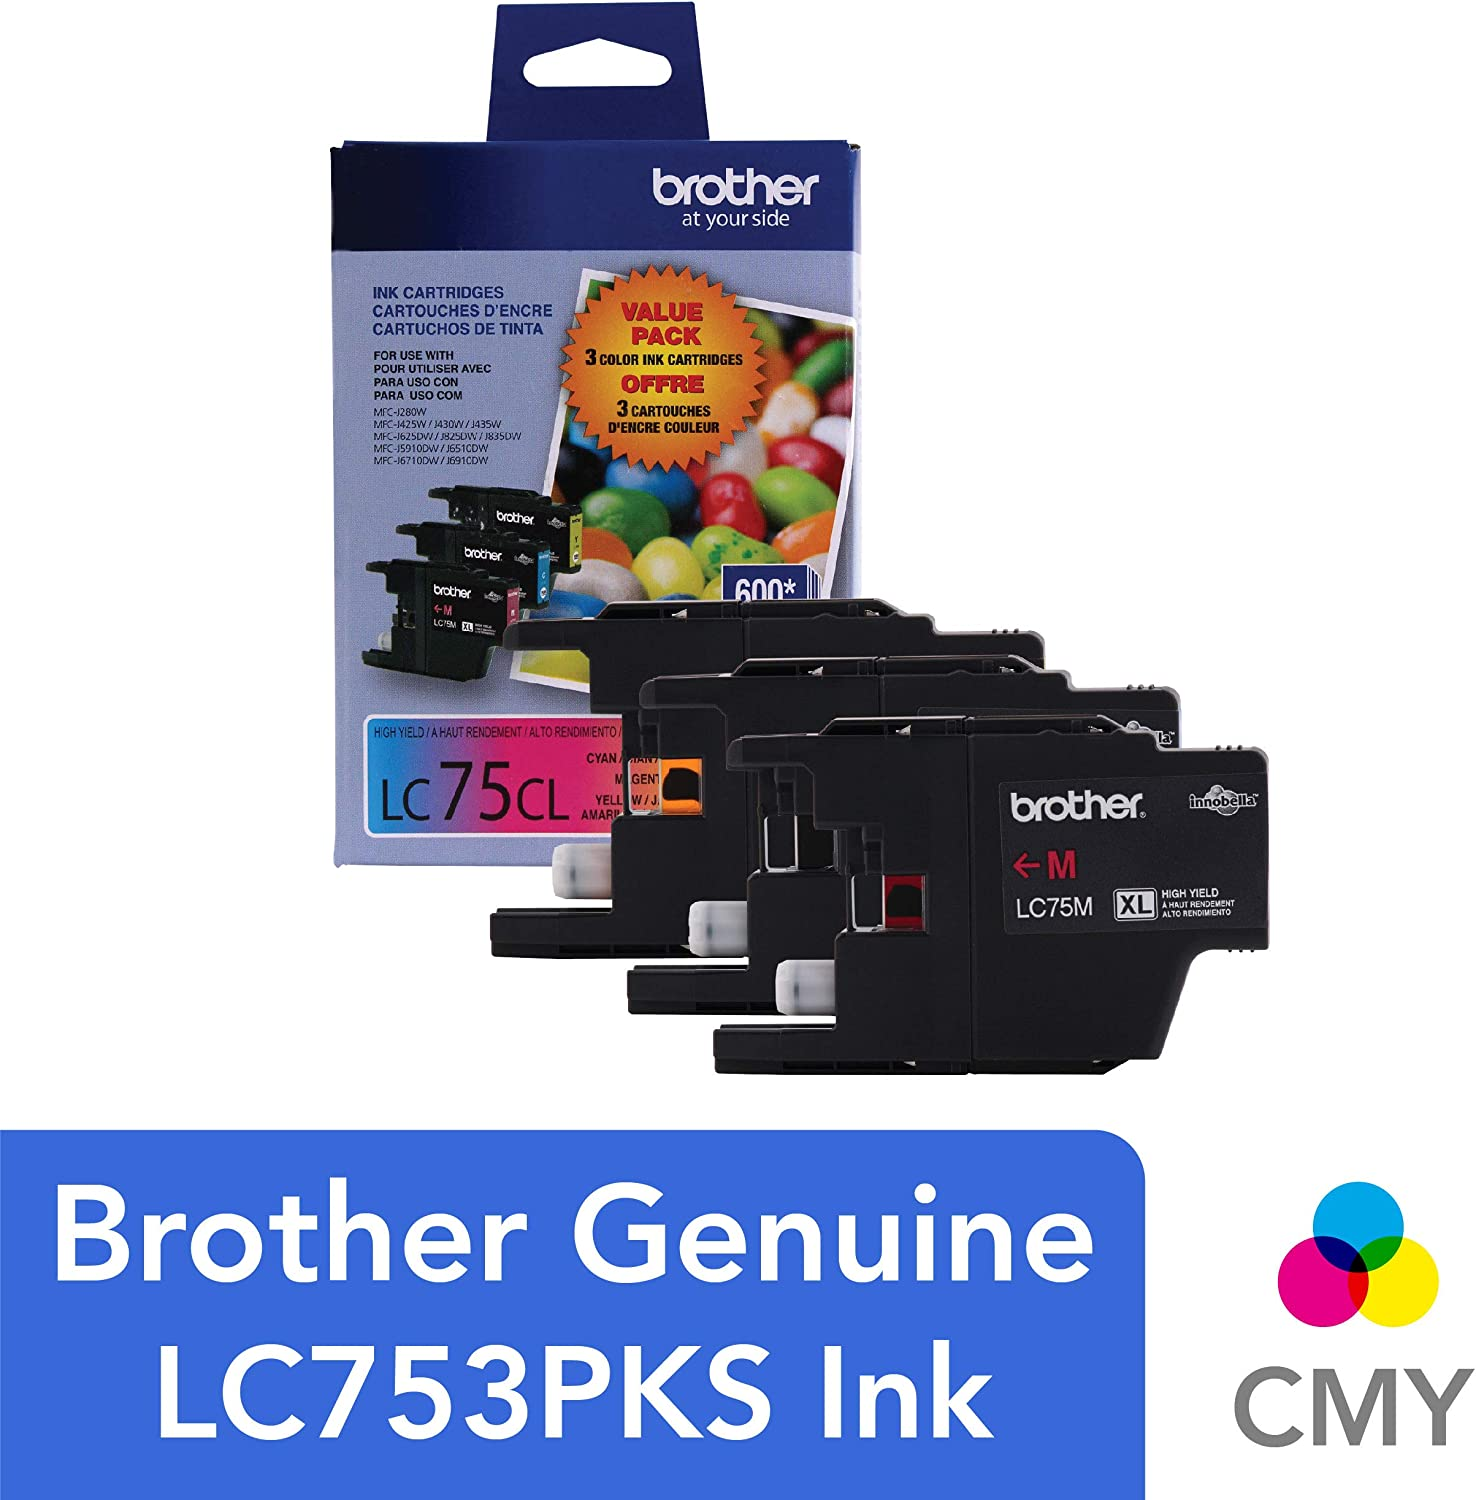 Brother Genuine High Yield Color Ink Cartridge, LC753PKS, Replacement 3 Pack Color Ink, Includes 1 Cartridge Each of Cyan, Magenta & Yellow, Page ...